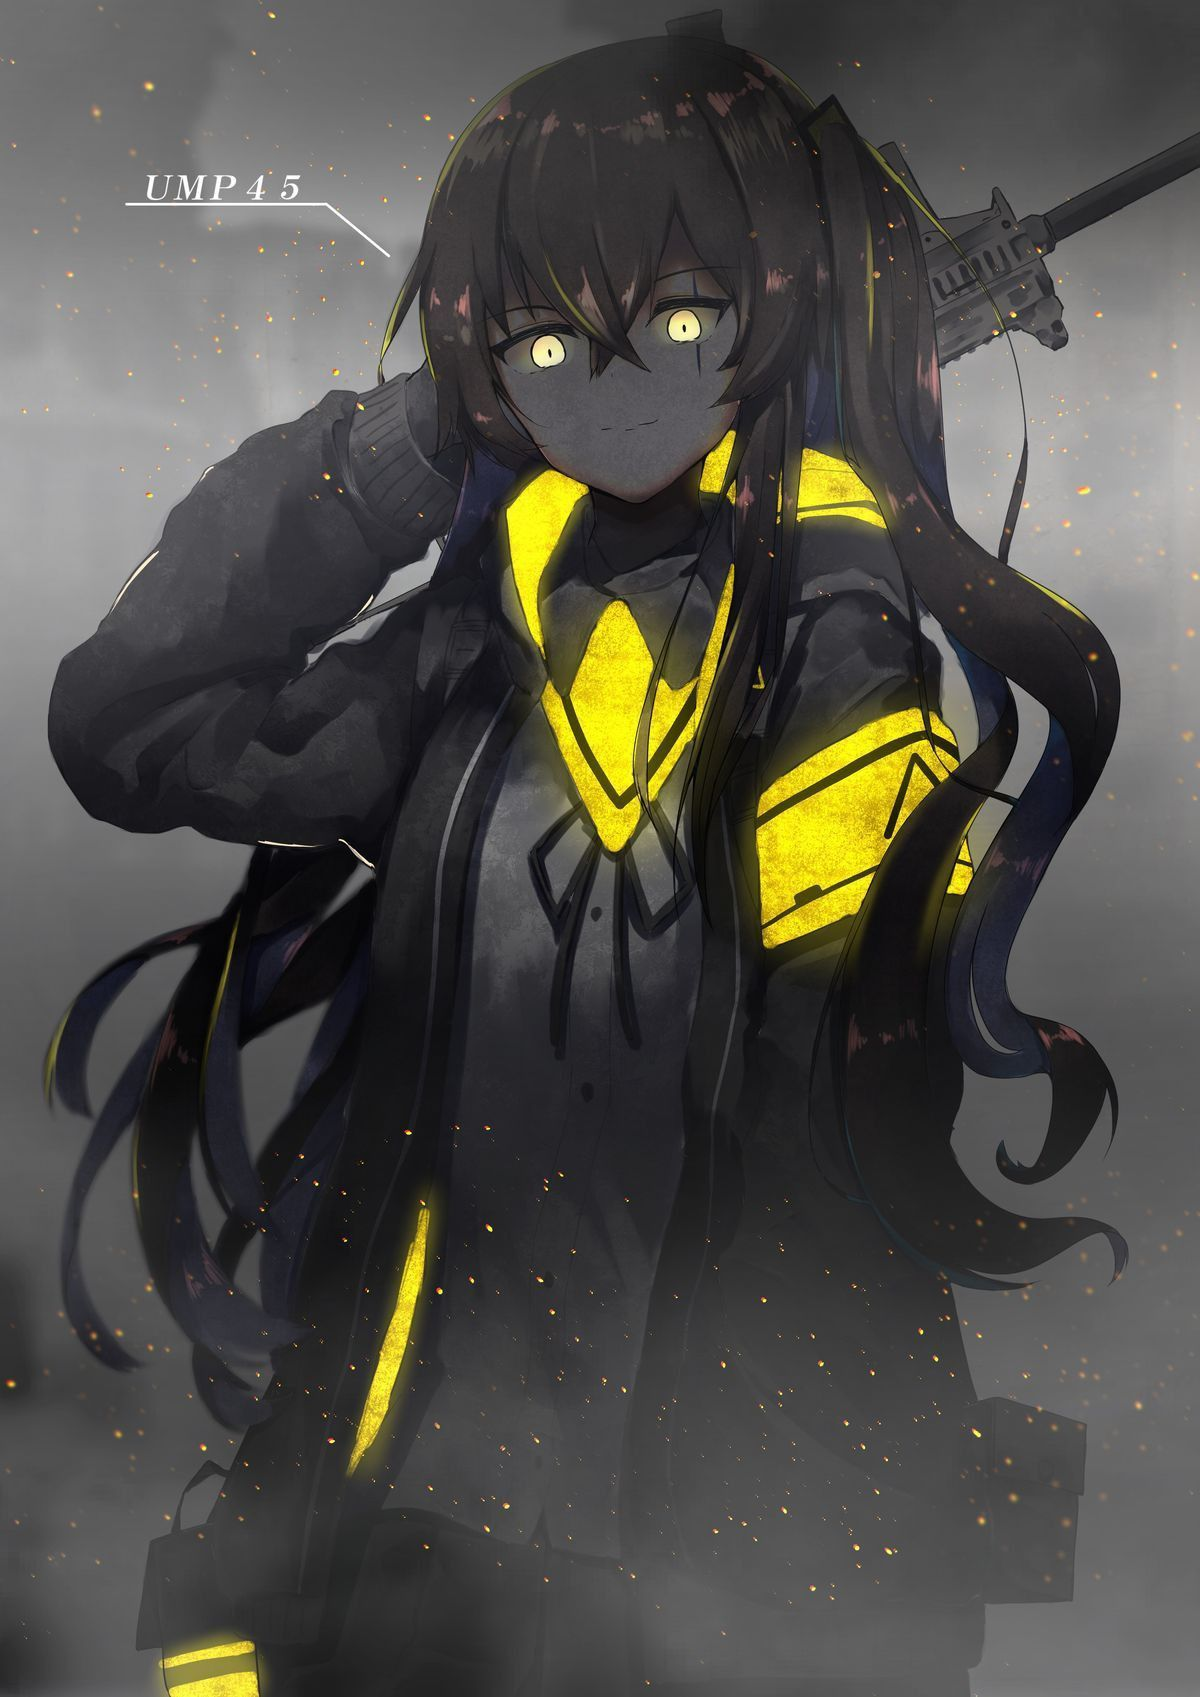 1200x1697 Pin by Just a person who likes anime on Anime Wallpapers | Pinterest ...